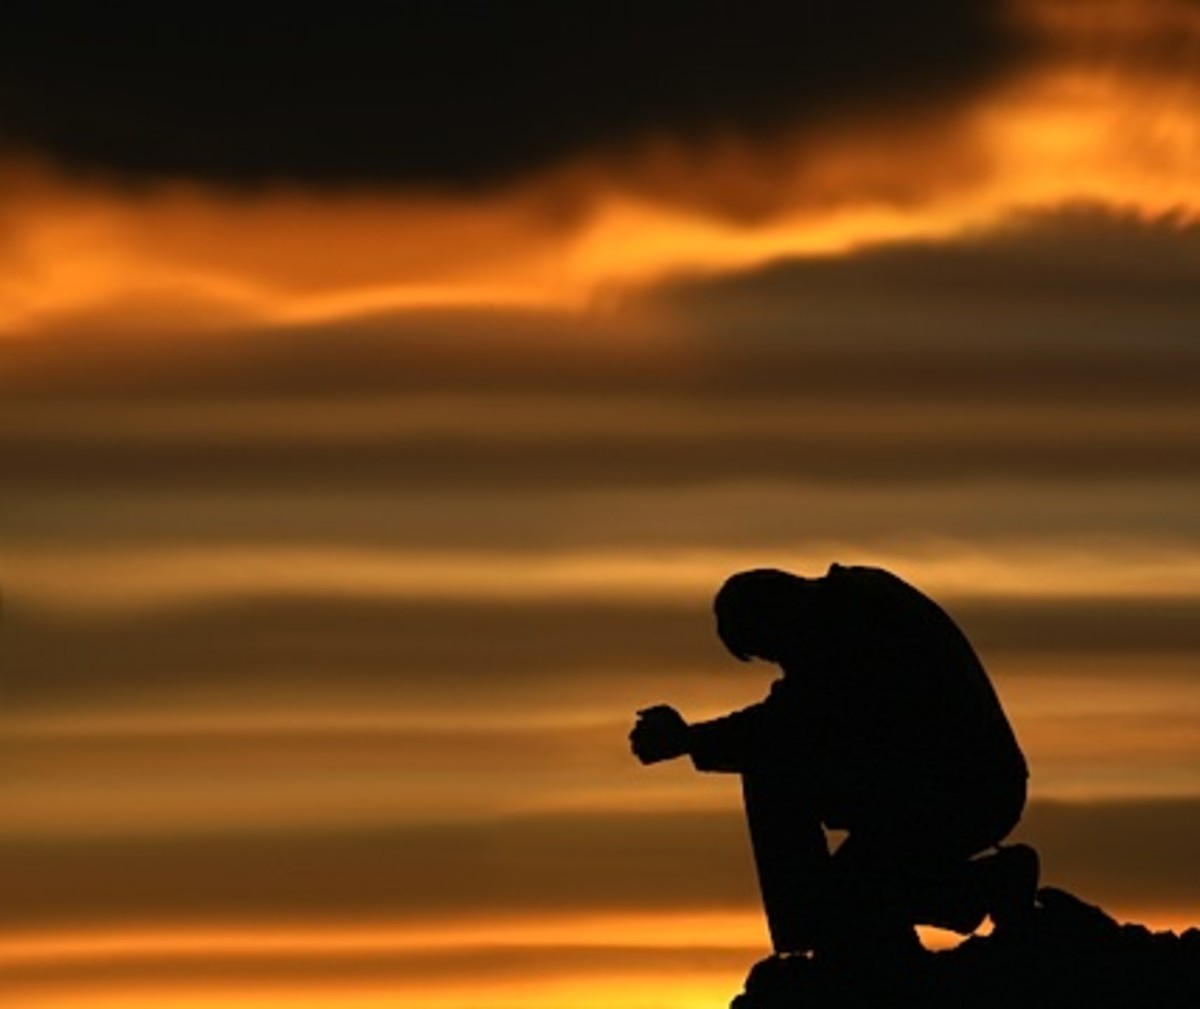 He Prays at dusk and dawn